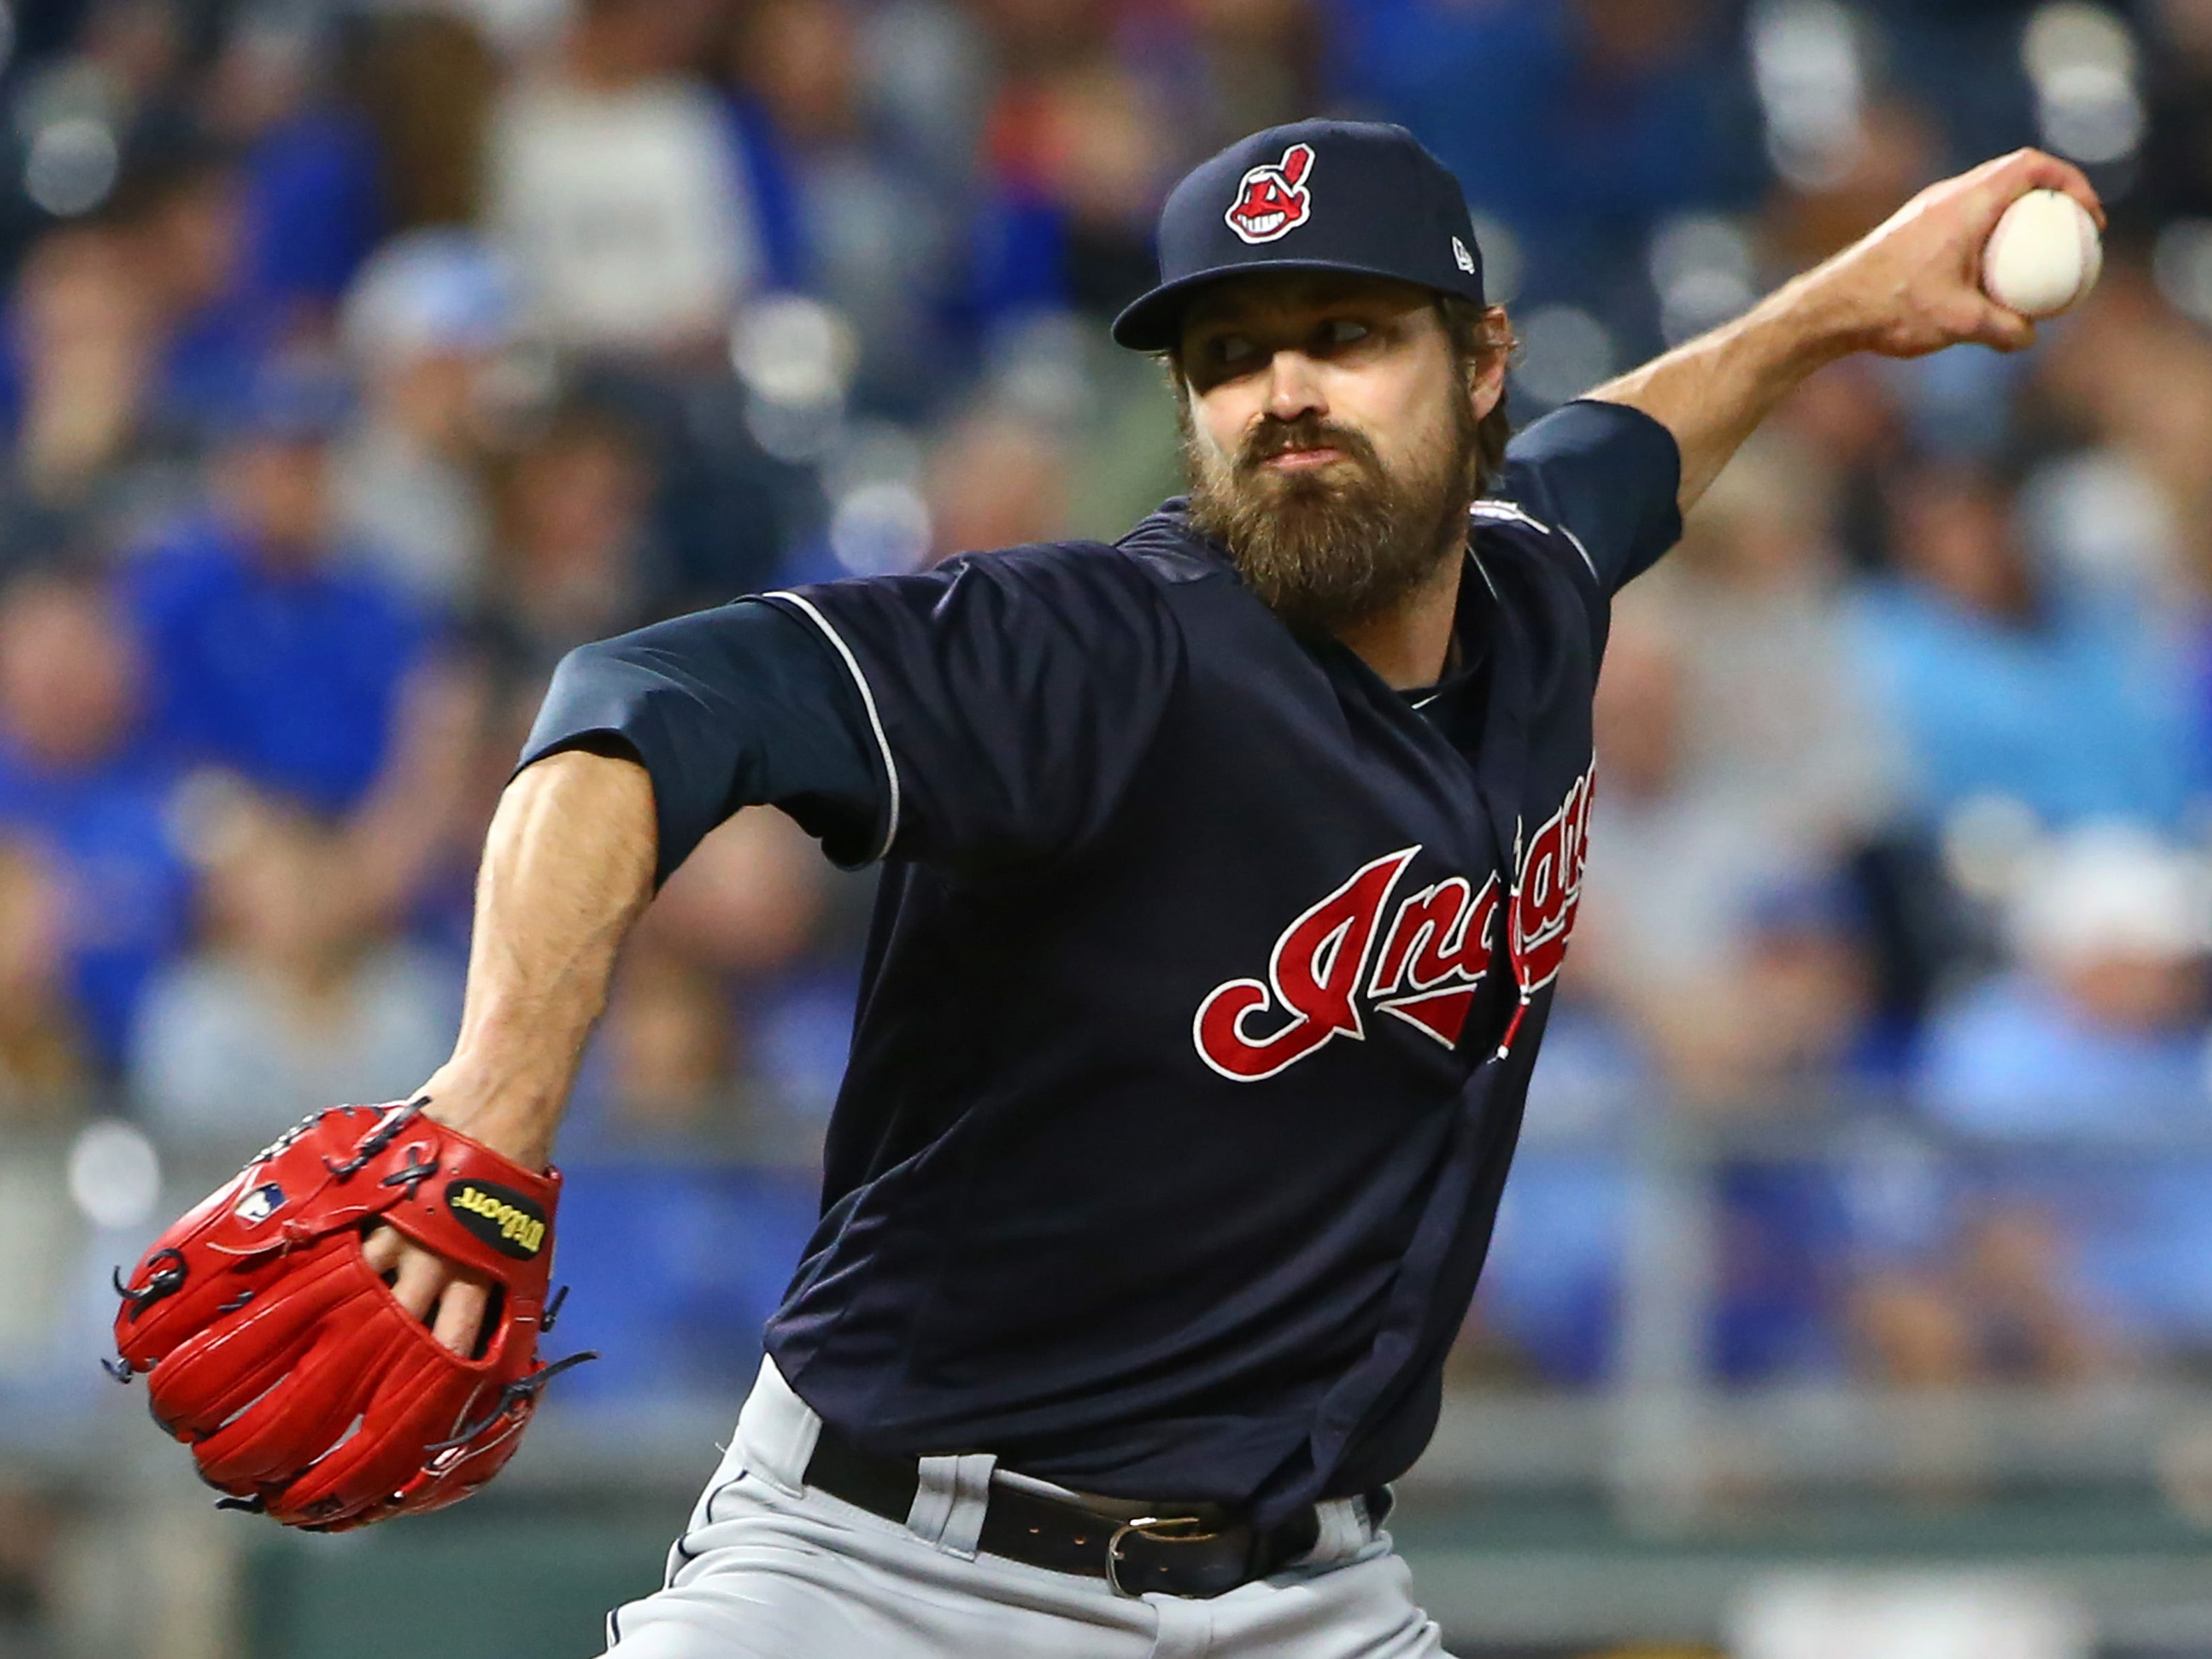 Cleveland Indians to debut new uniforms without the Chief Wahoo logo